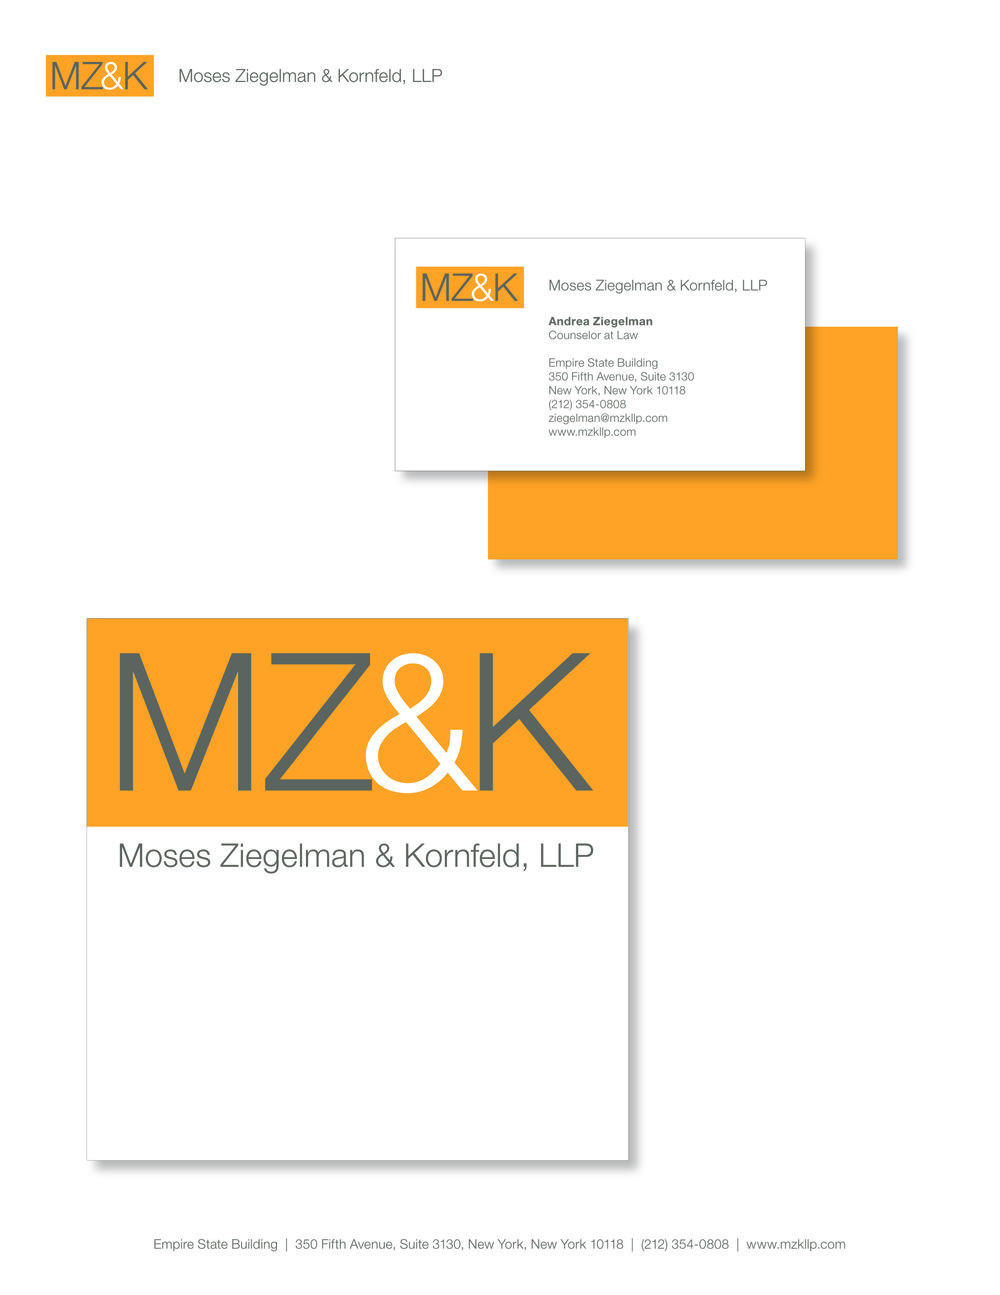 MZ&K Stationery Comp.jpg